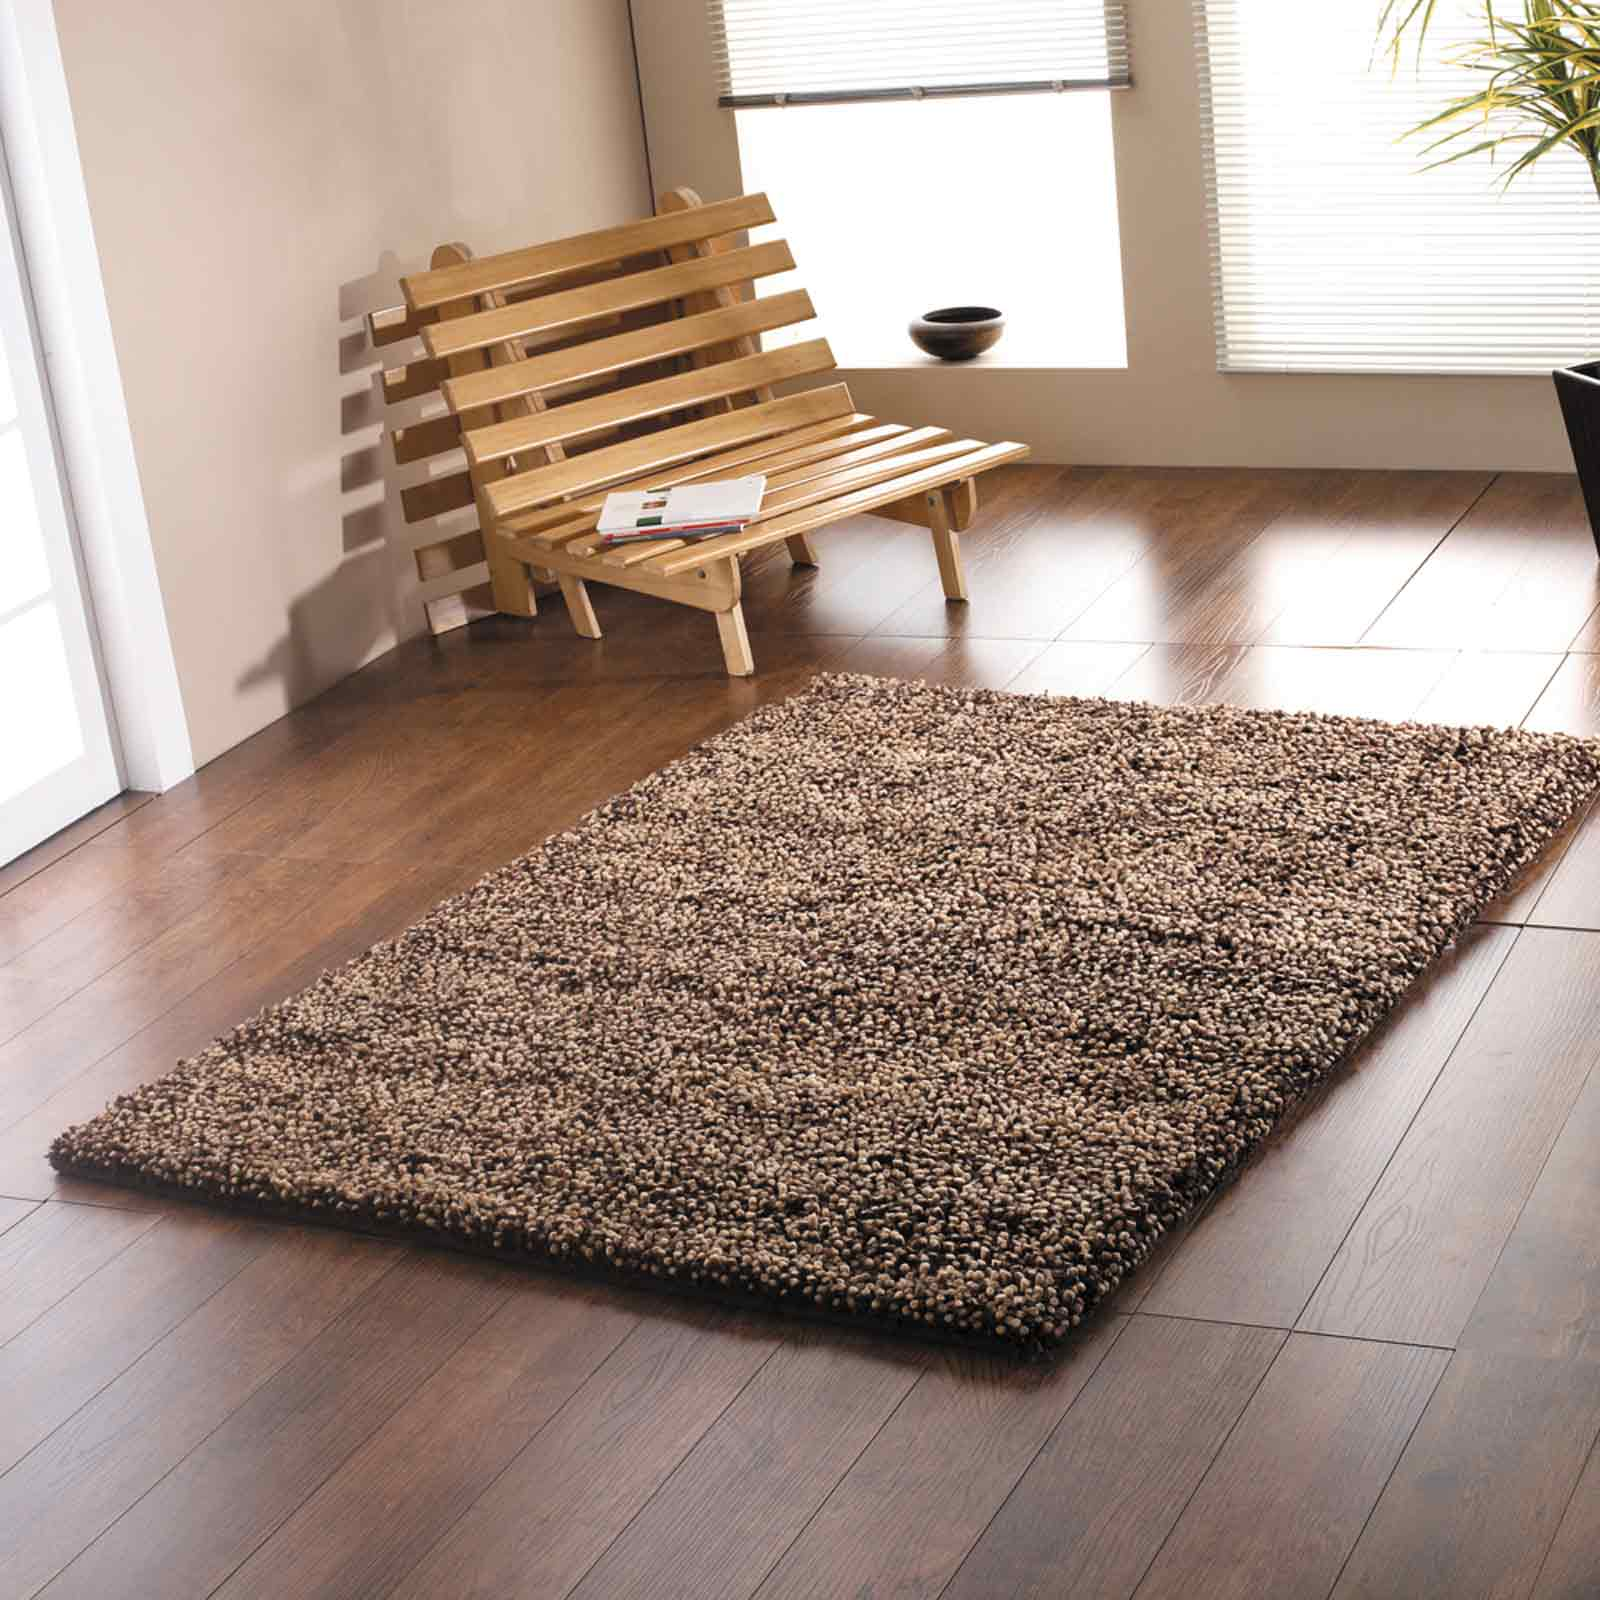 KENSINGTON RUGS - PURE SHAGGY WOOL IN CHOCOLATE